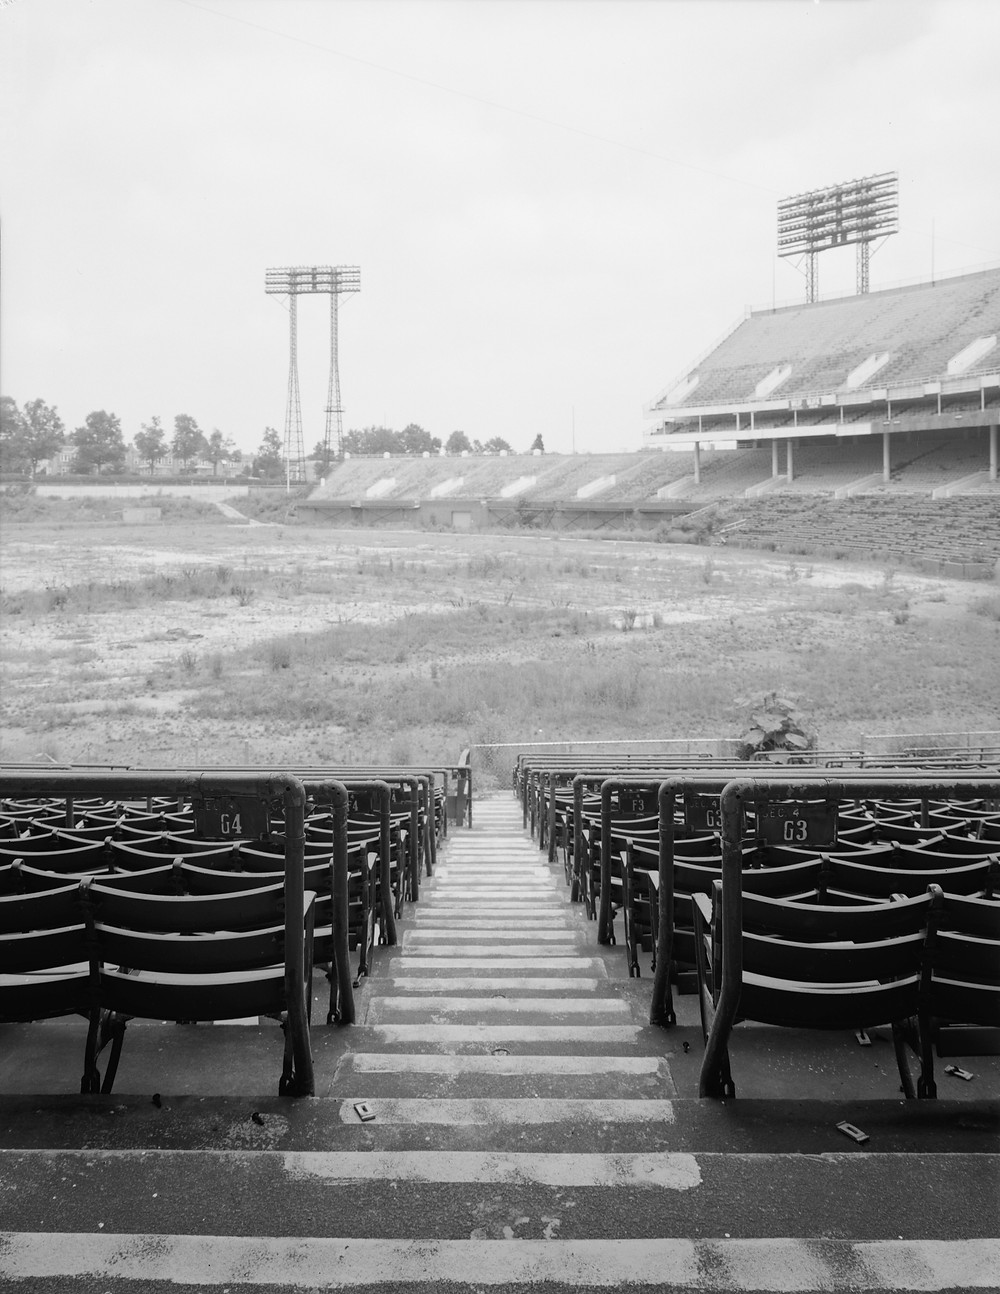 Memorial Stadium in Baltimore. Some time after abandonment. Public Domain.